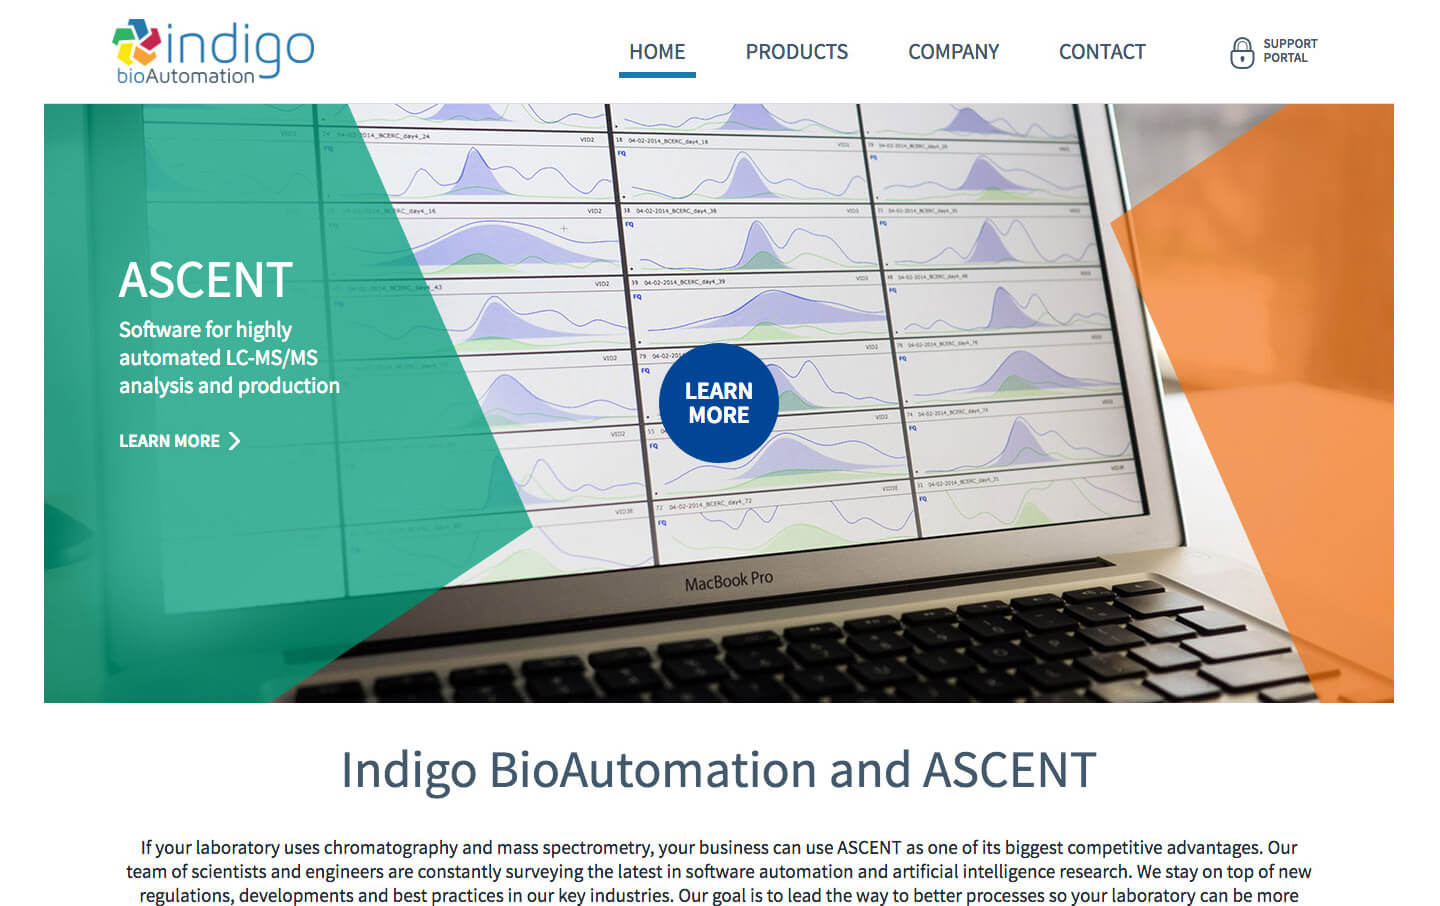 Indigo BioAutomation desktop homepage web design